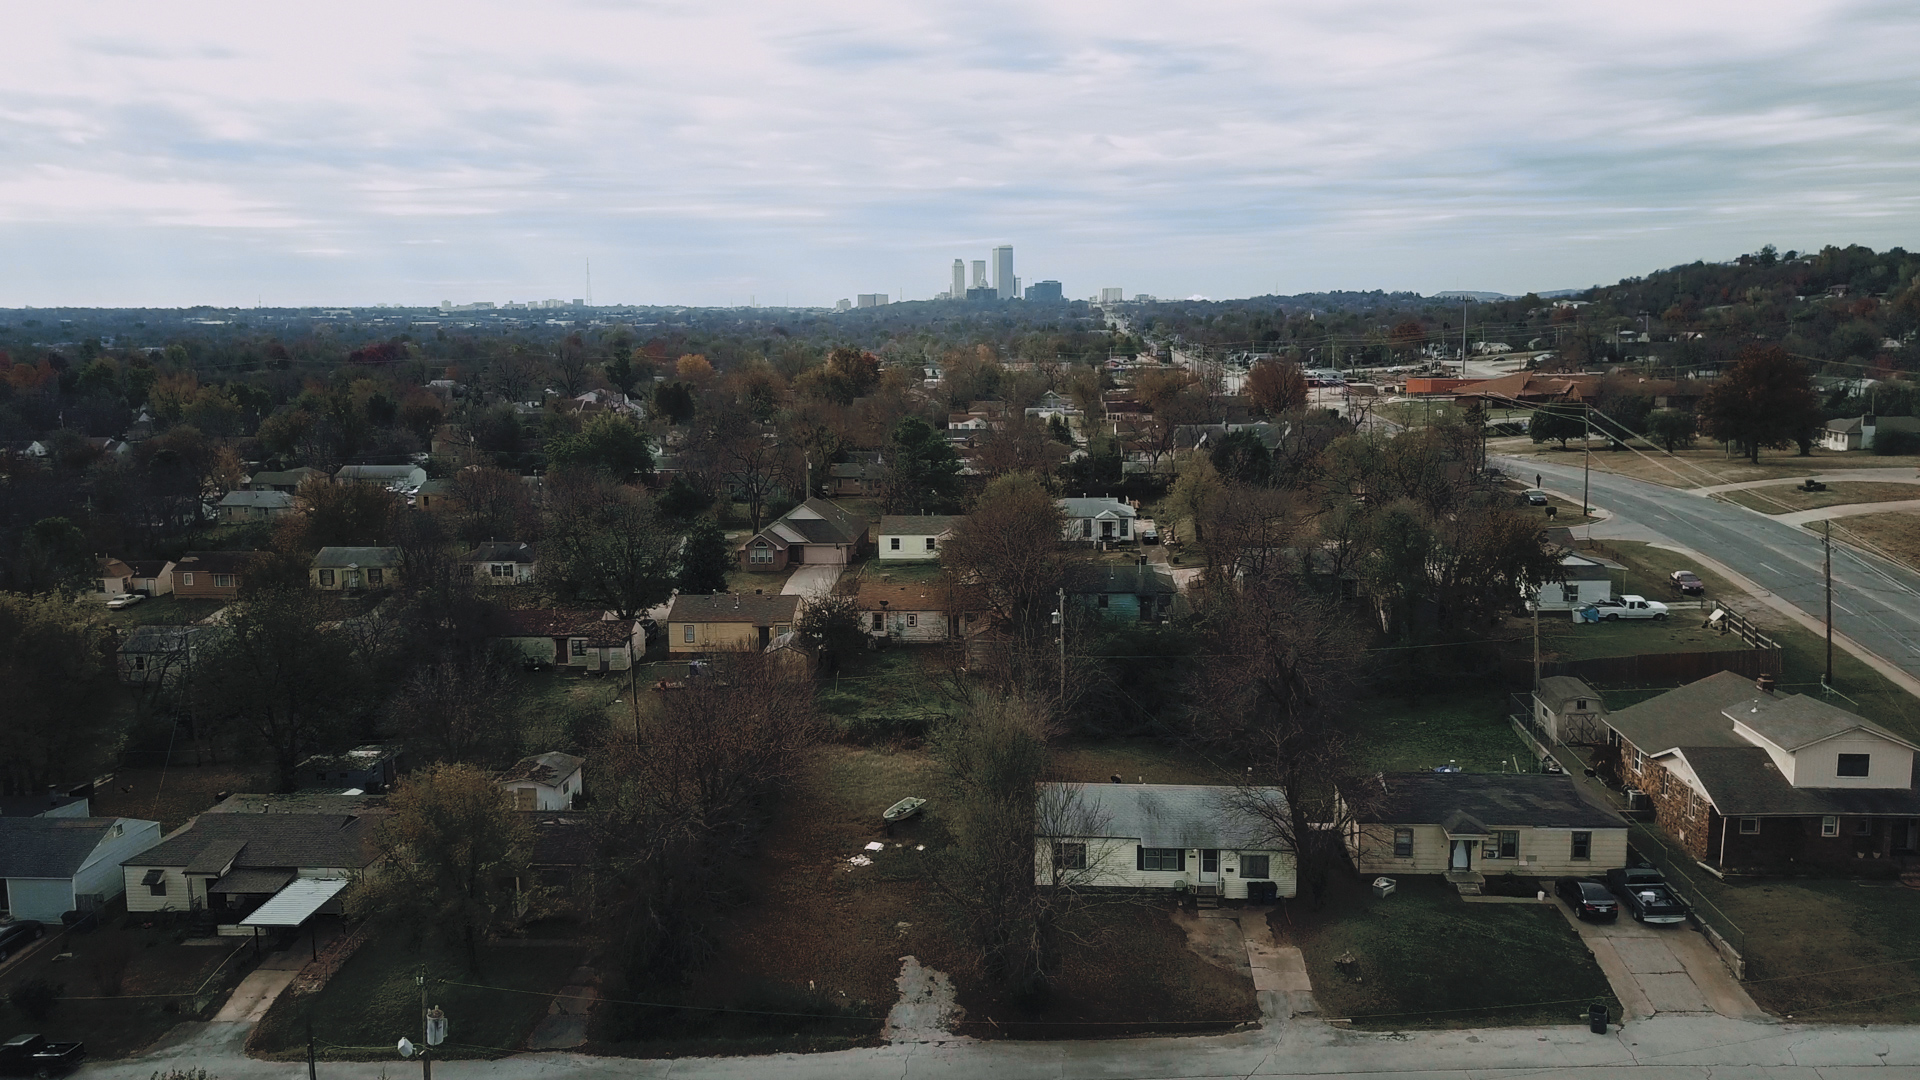 North Tulsa, Oklahoma